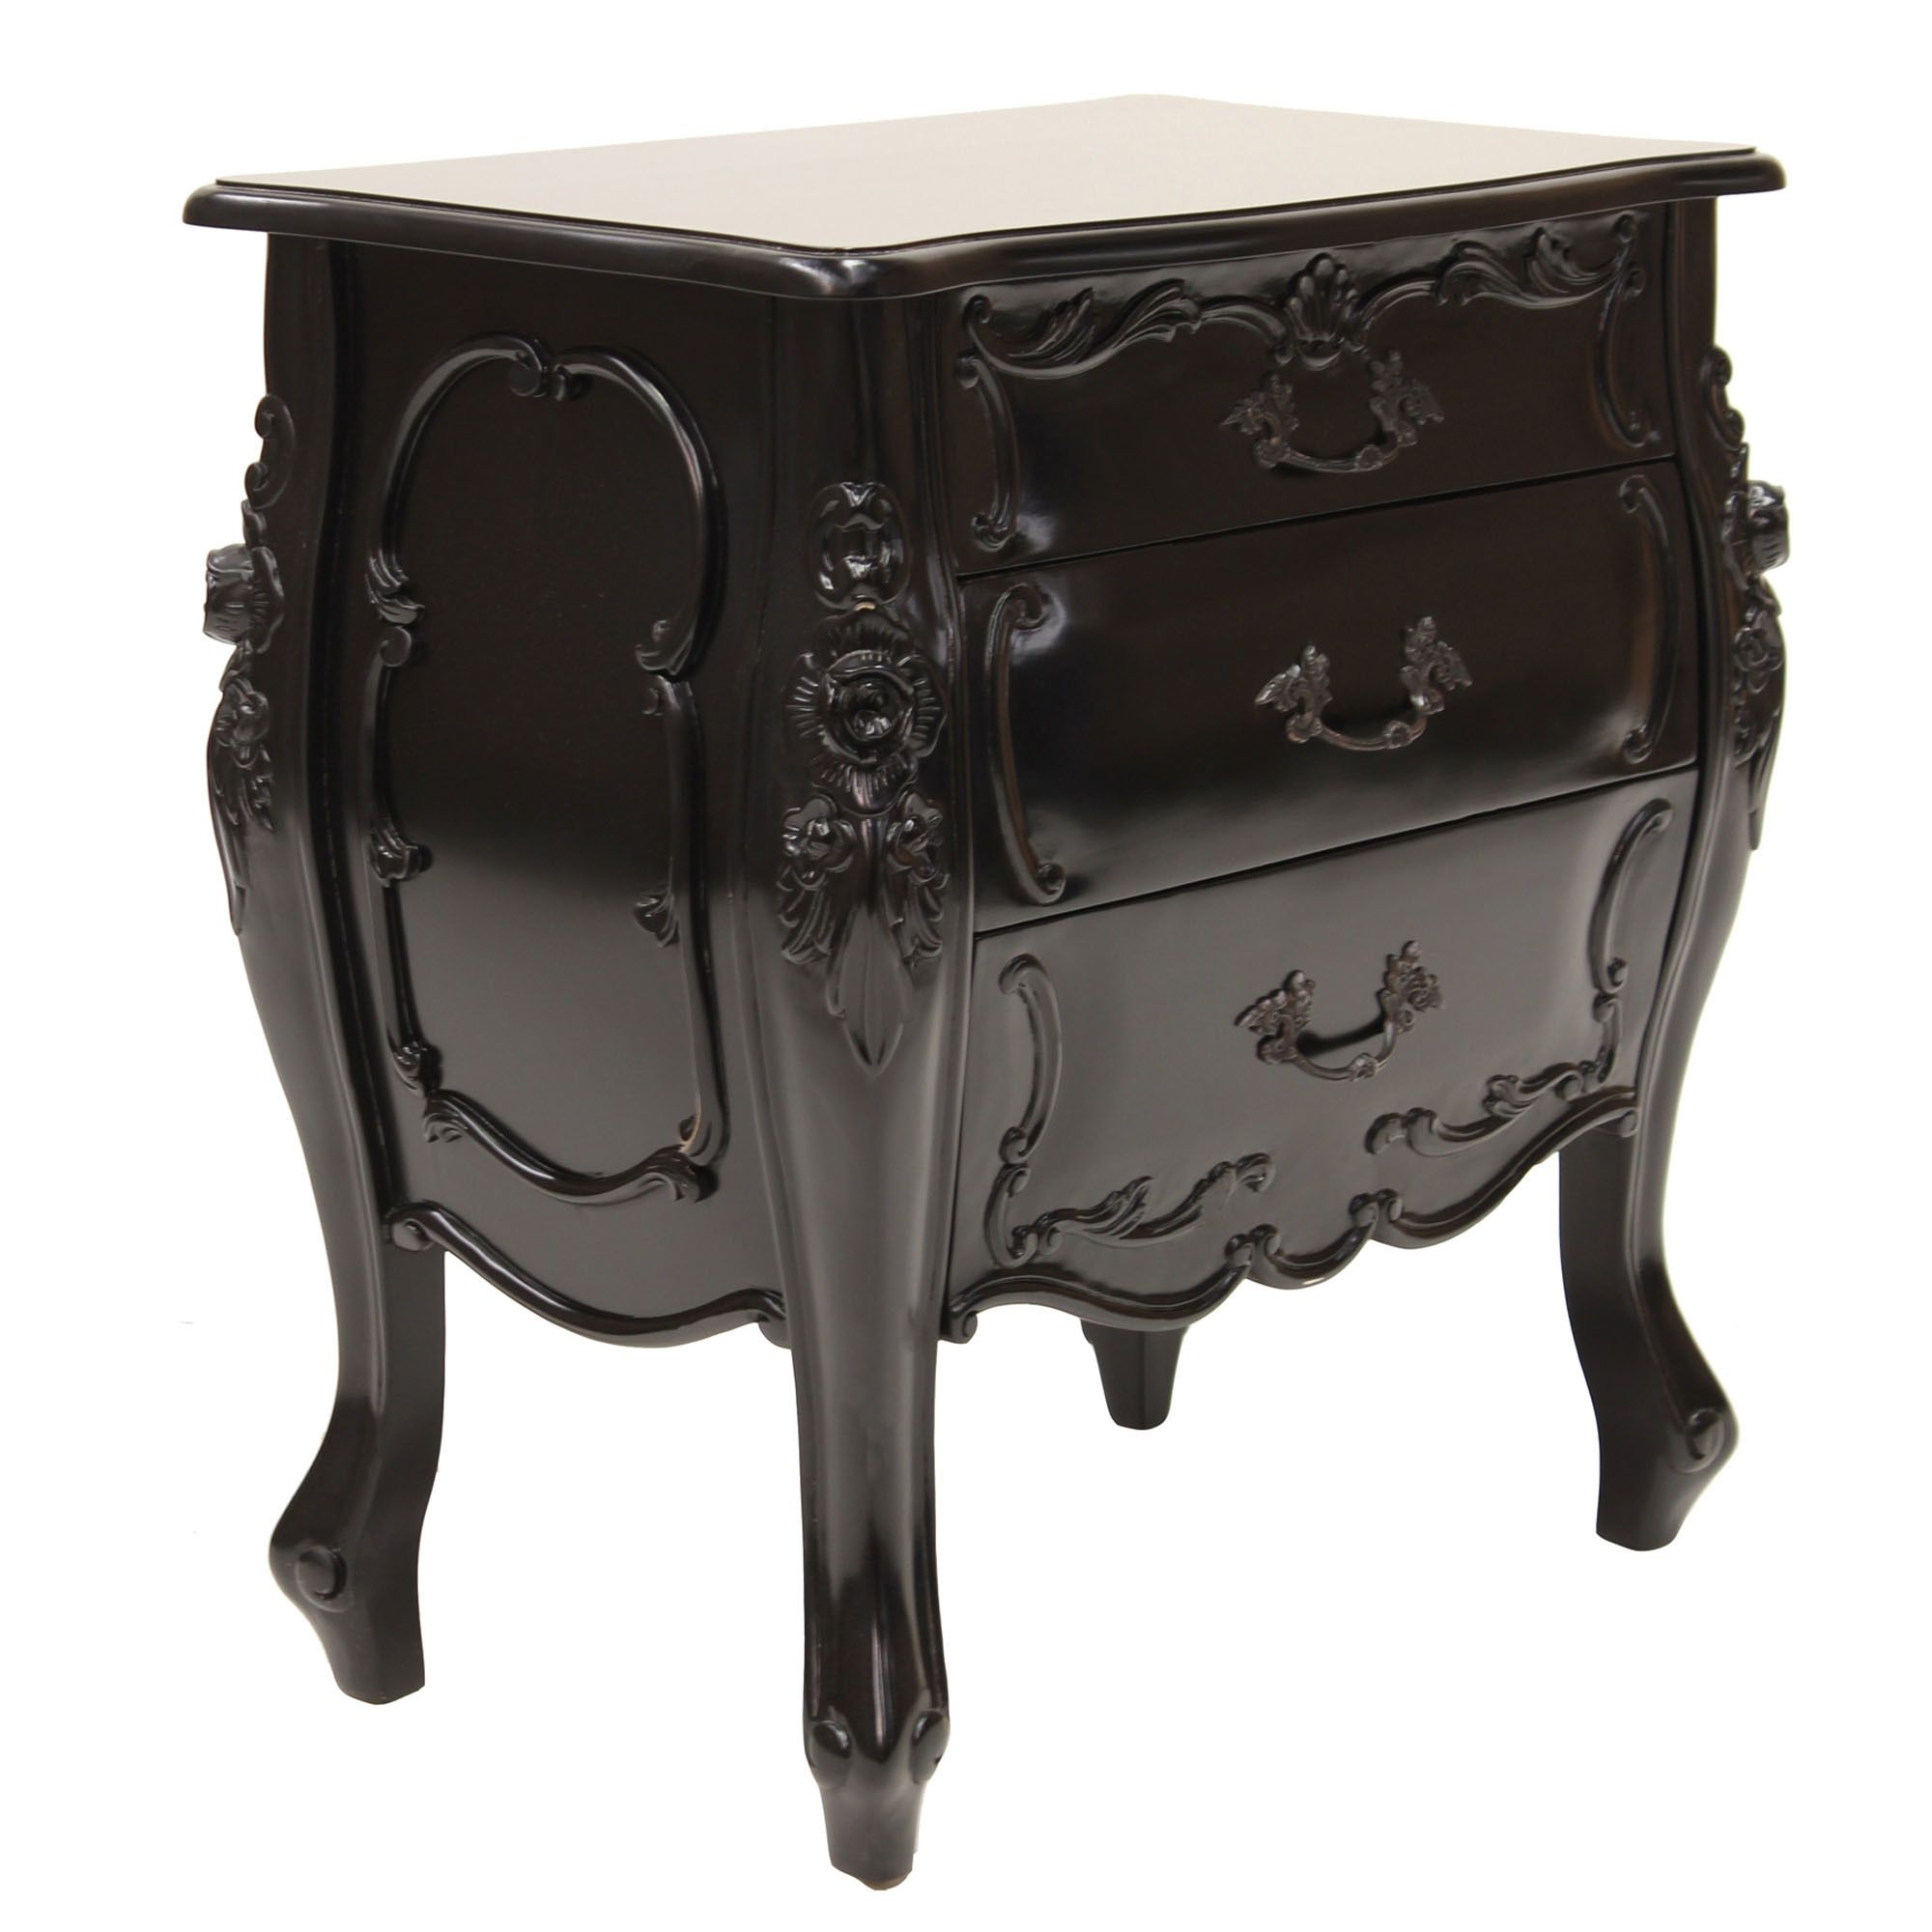 French Provincial Aubrey Bedside Table French provincial